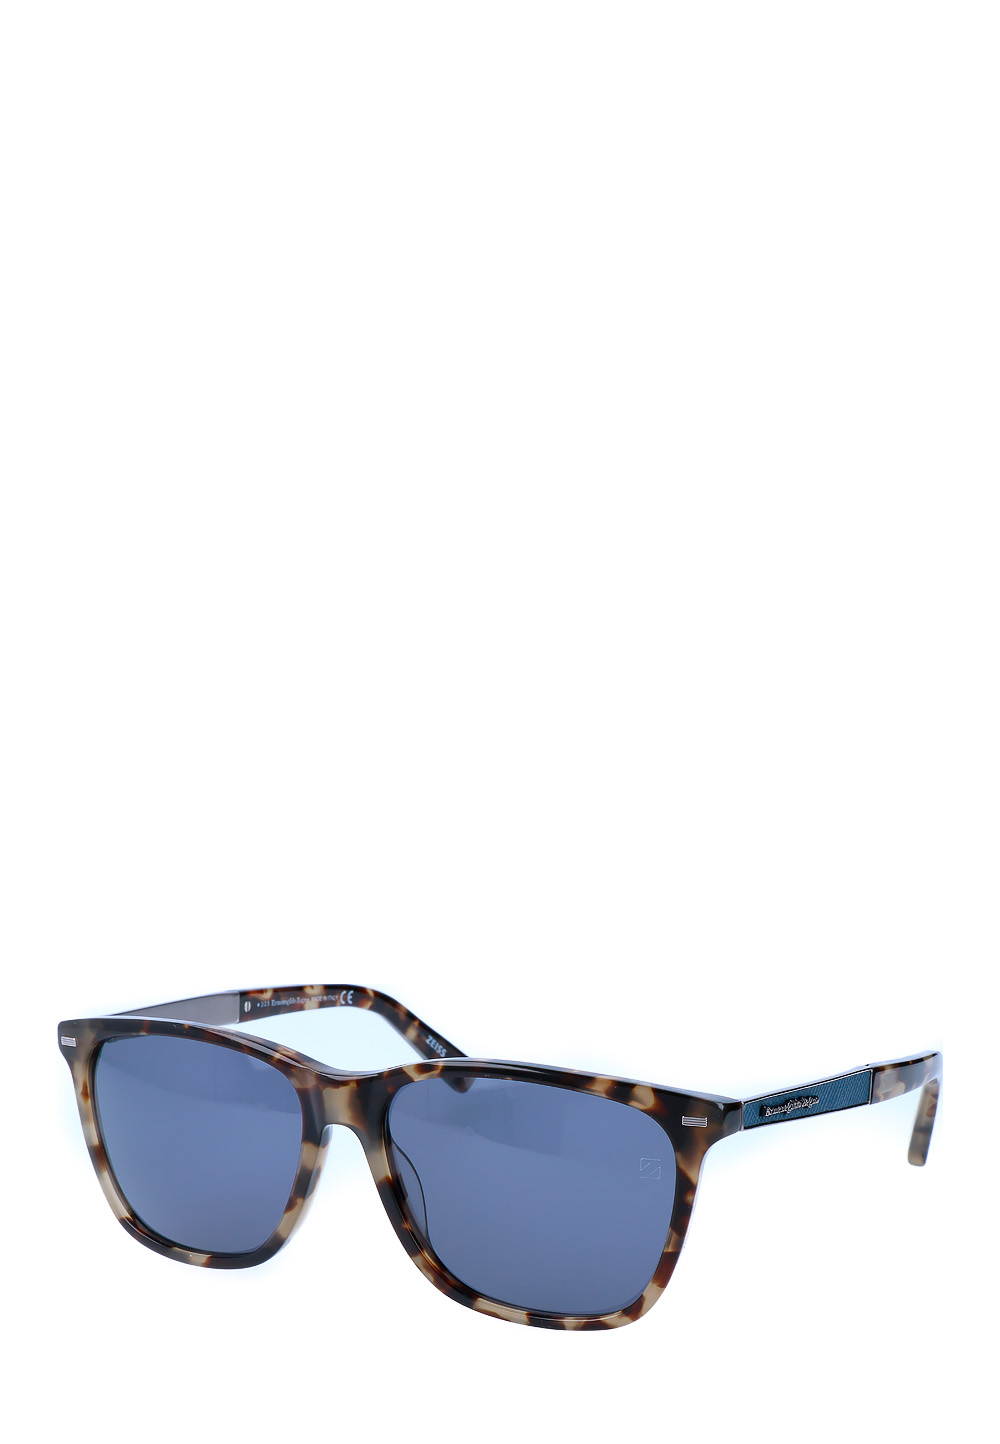 Ermenegildo Sonnenbrille Ez0023, Uv400, coloured havana bunt